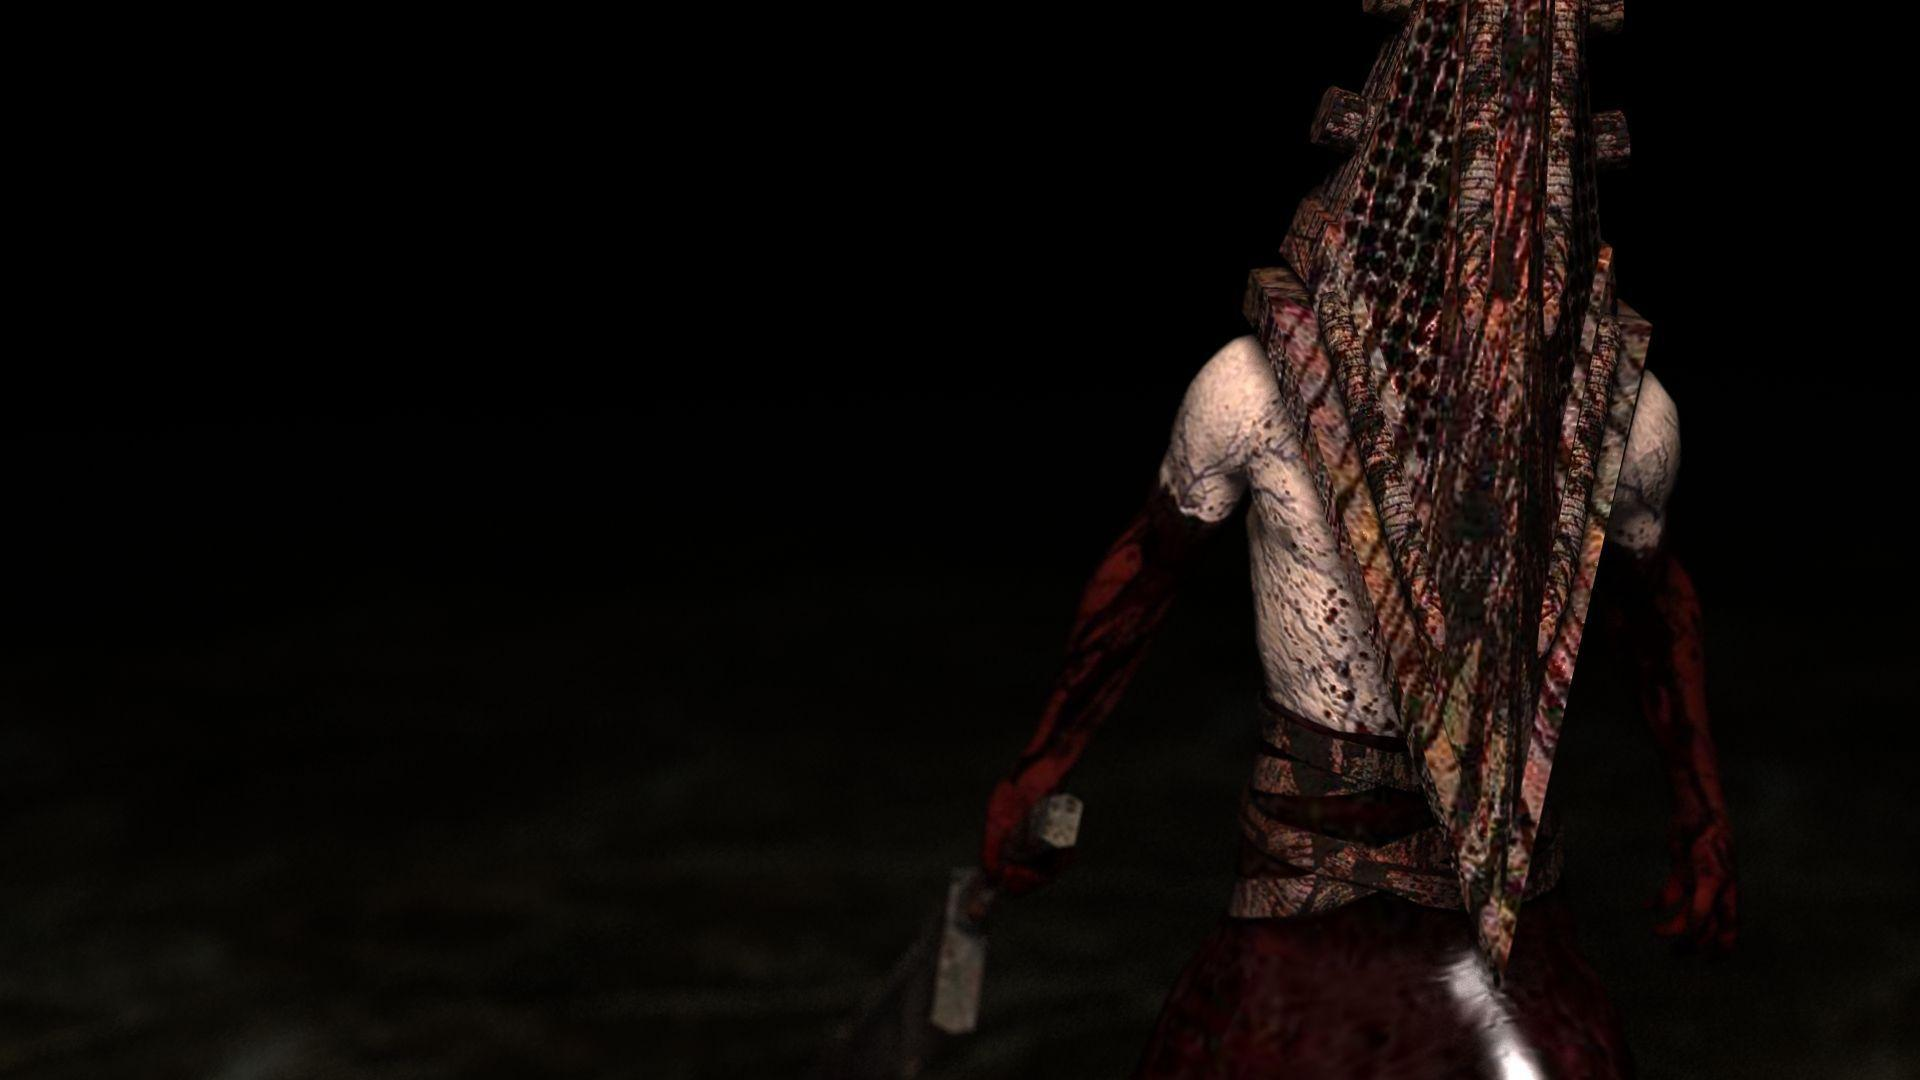 pyramid head wallpaper 1280x800 - photo #12